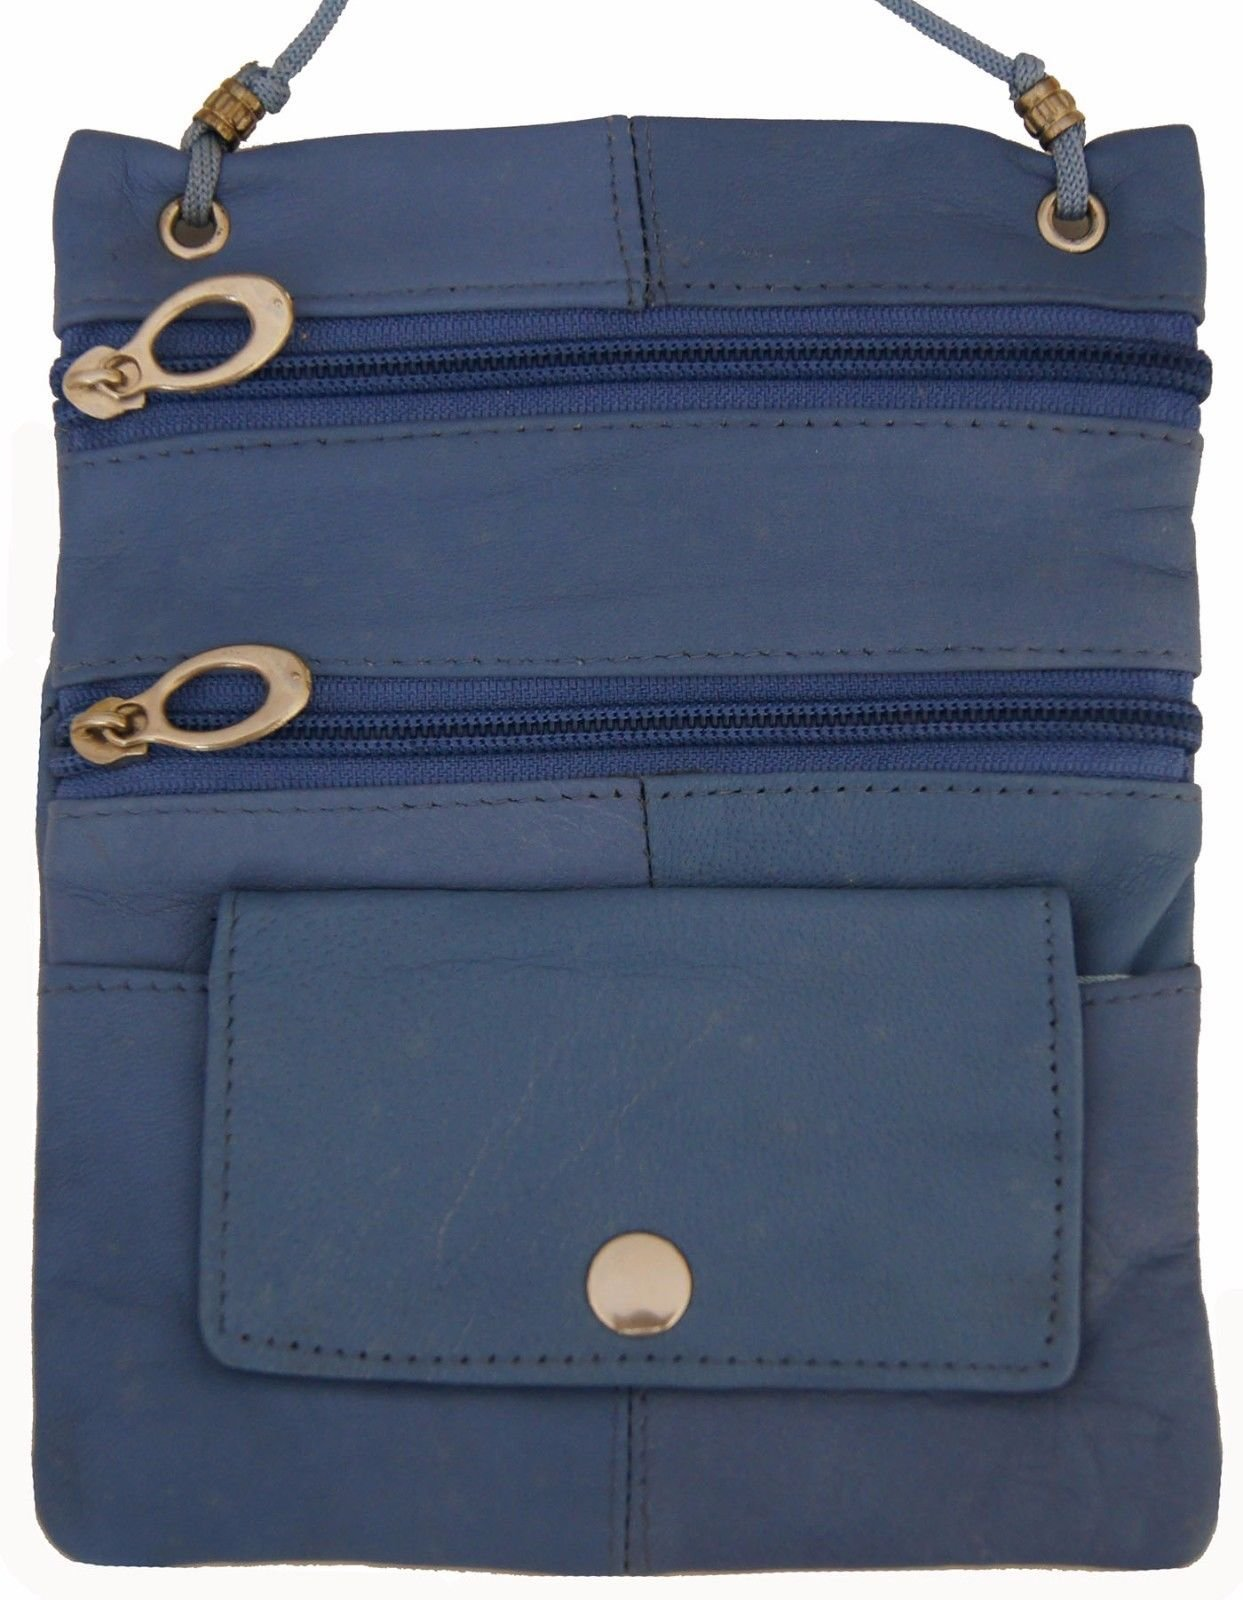 Baby Blue Genuine Leather Passport Id Documents Holder Neck Travel Pouch Bag